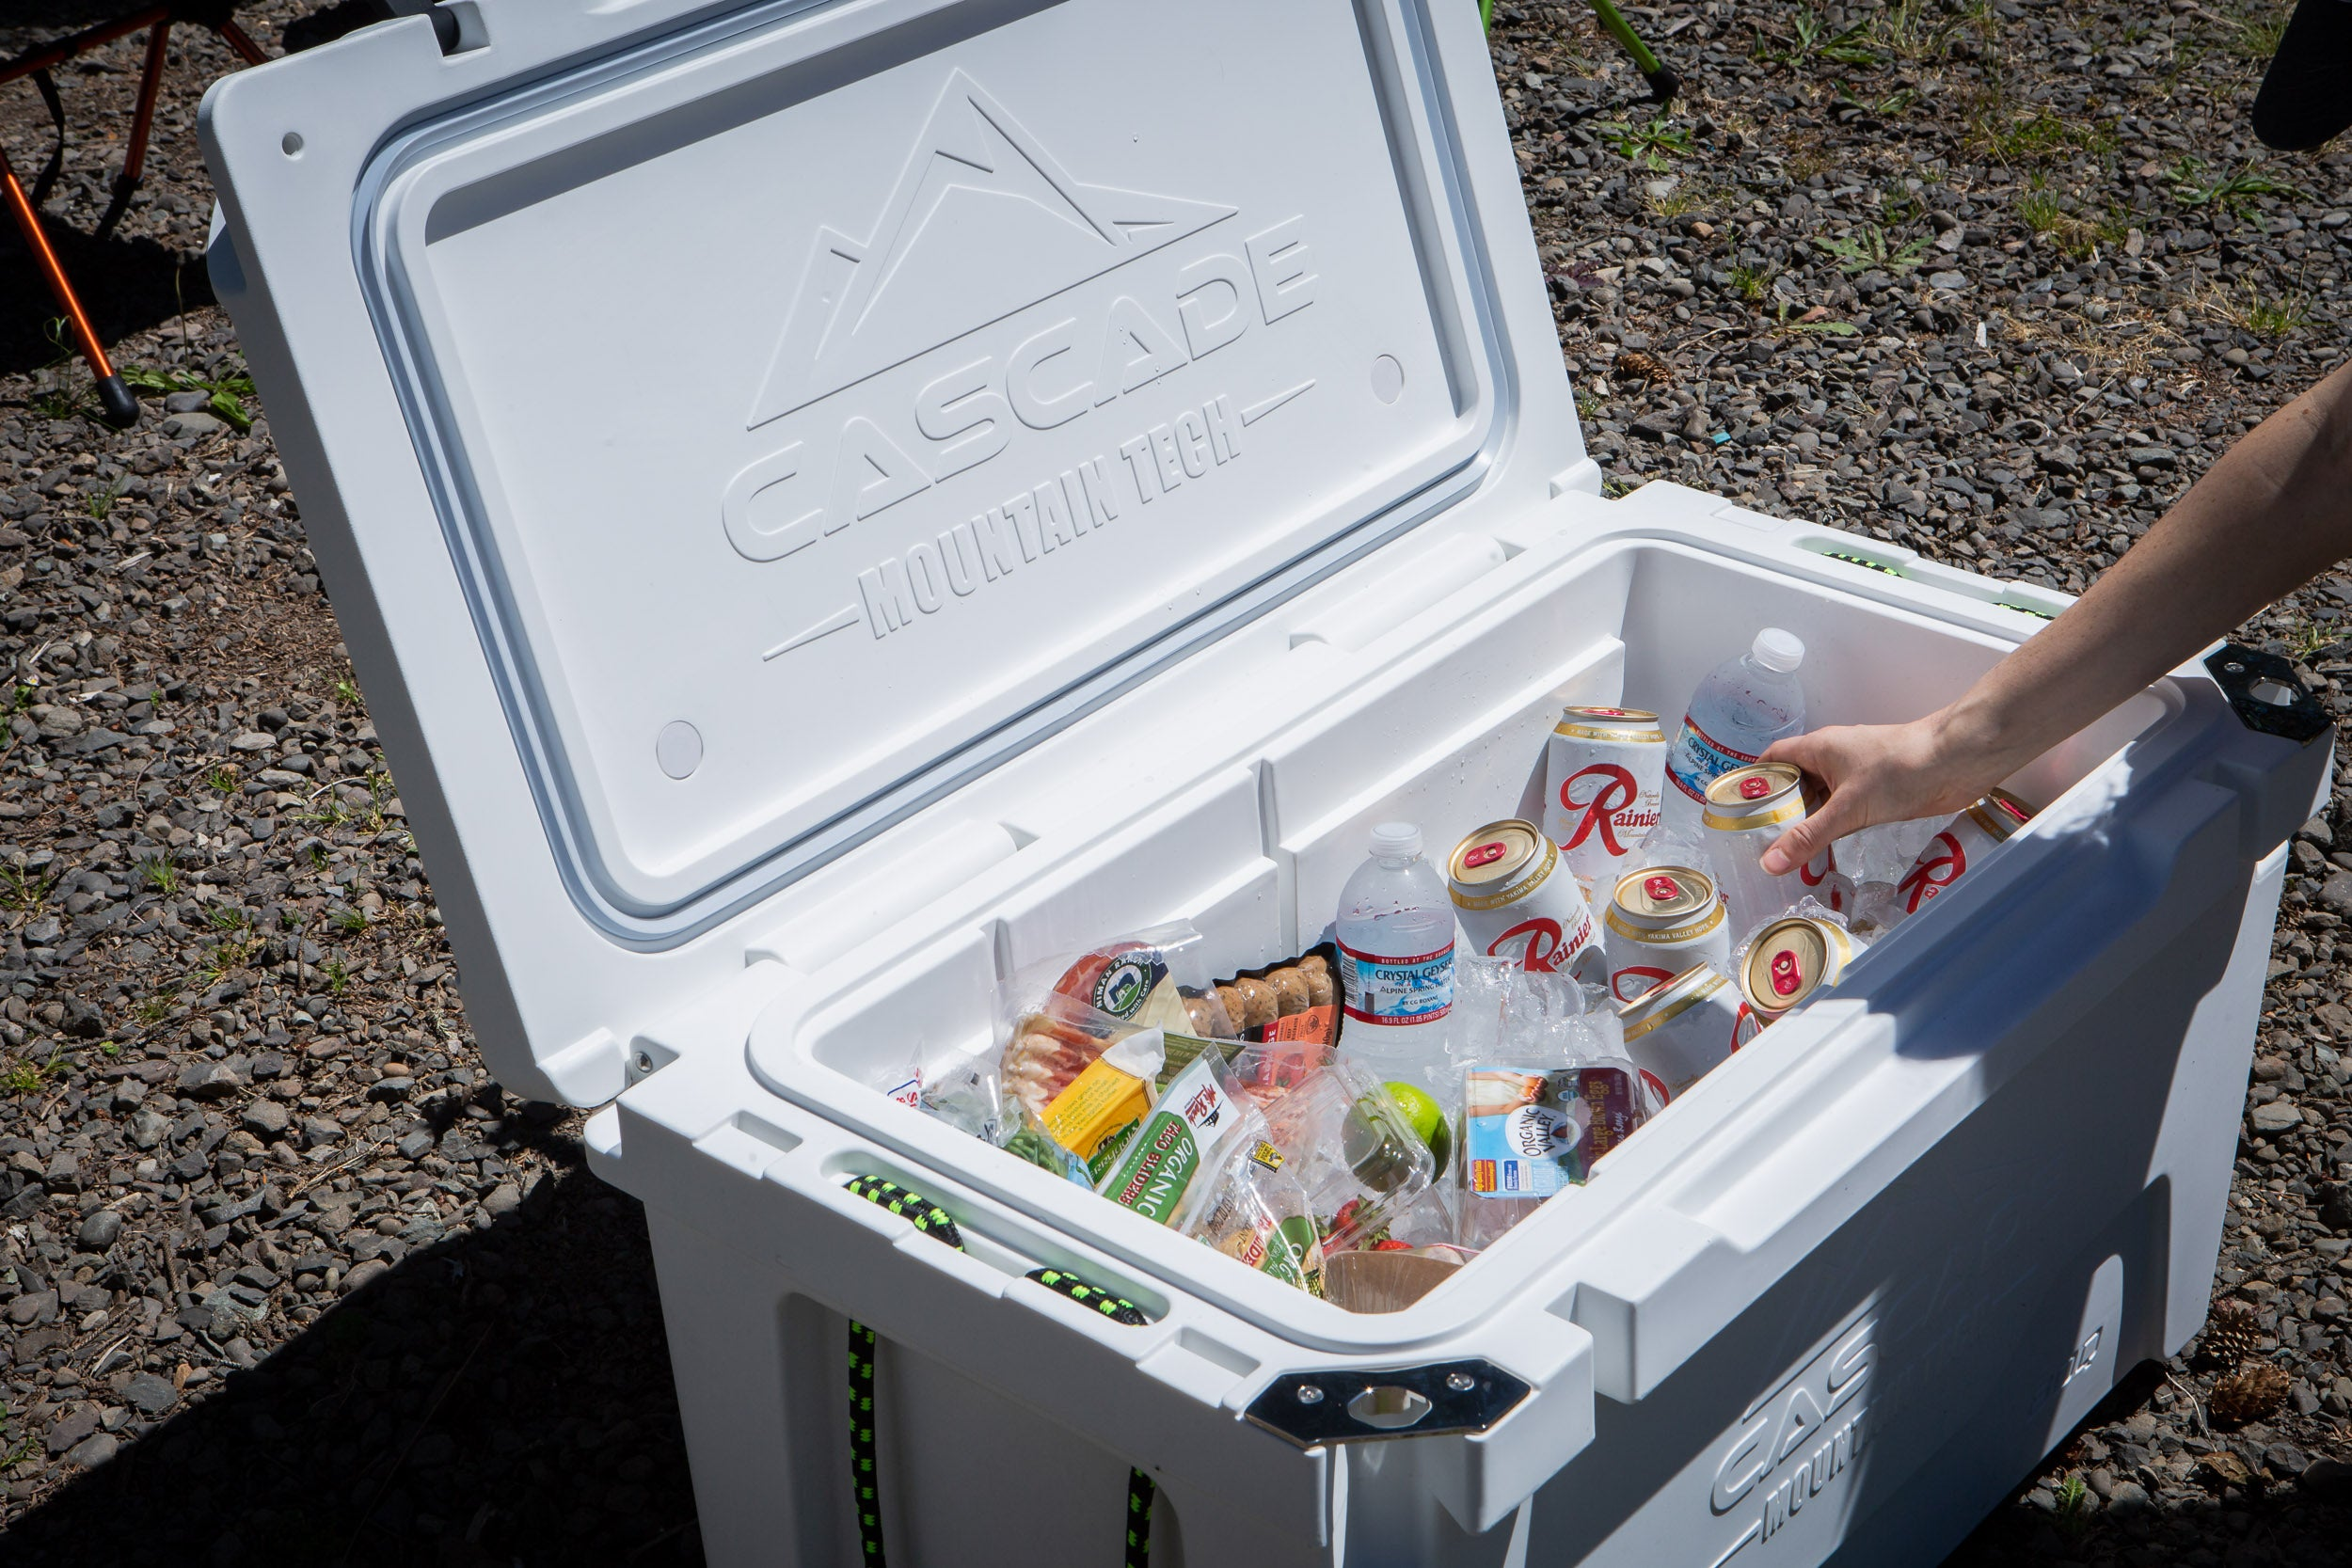 maxing out the storage capacity of your camping cooler